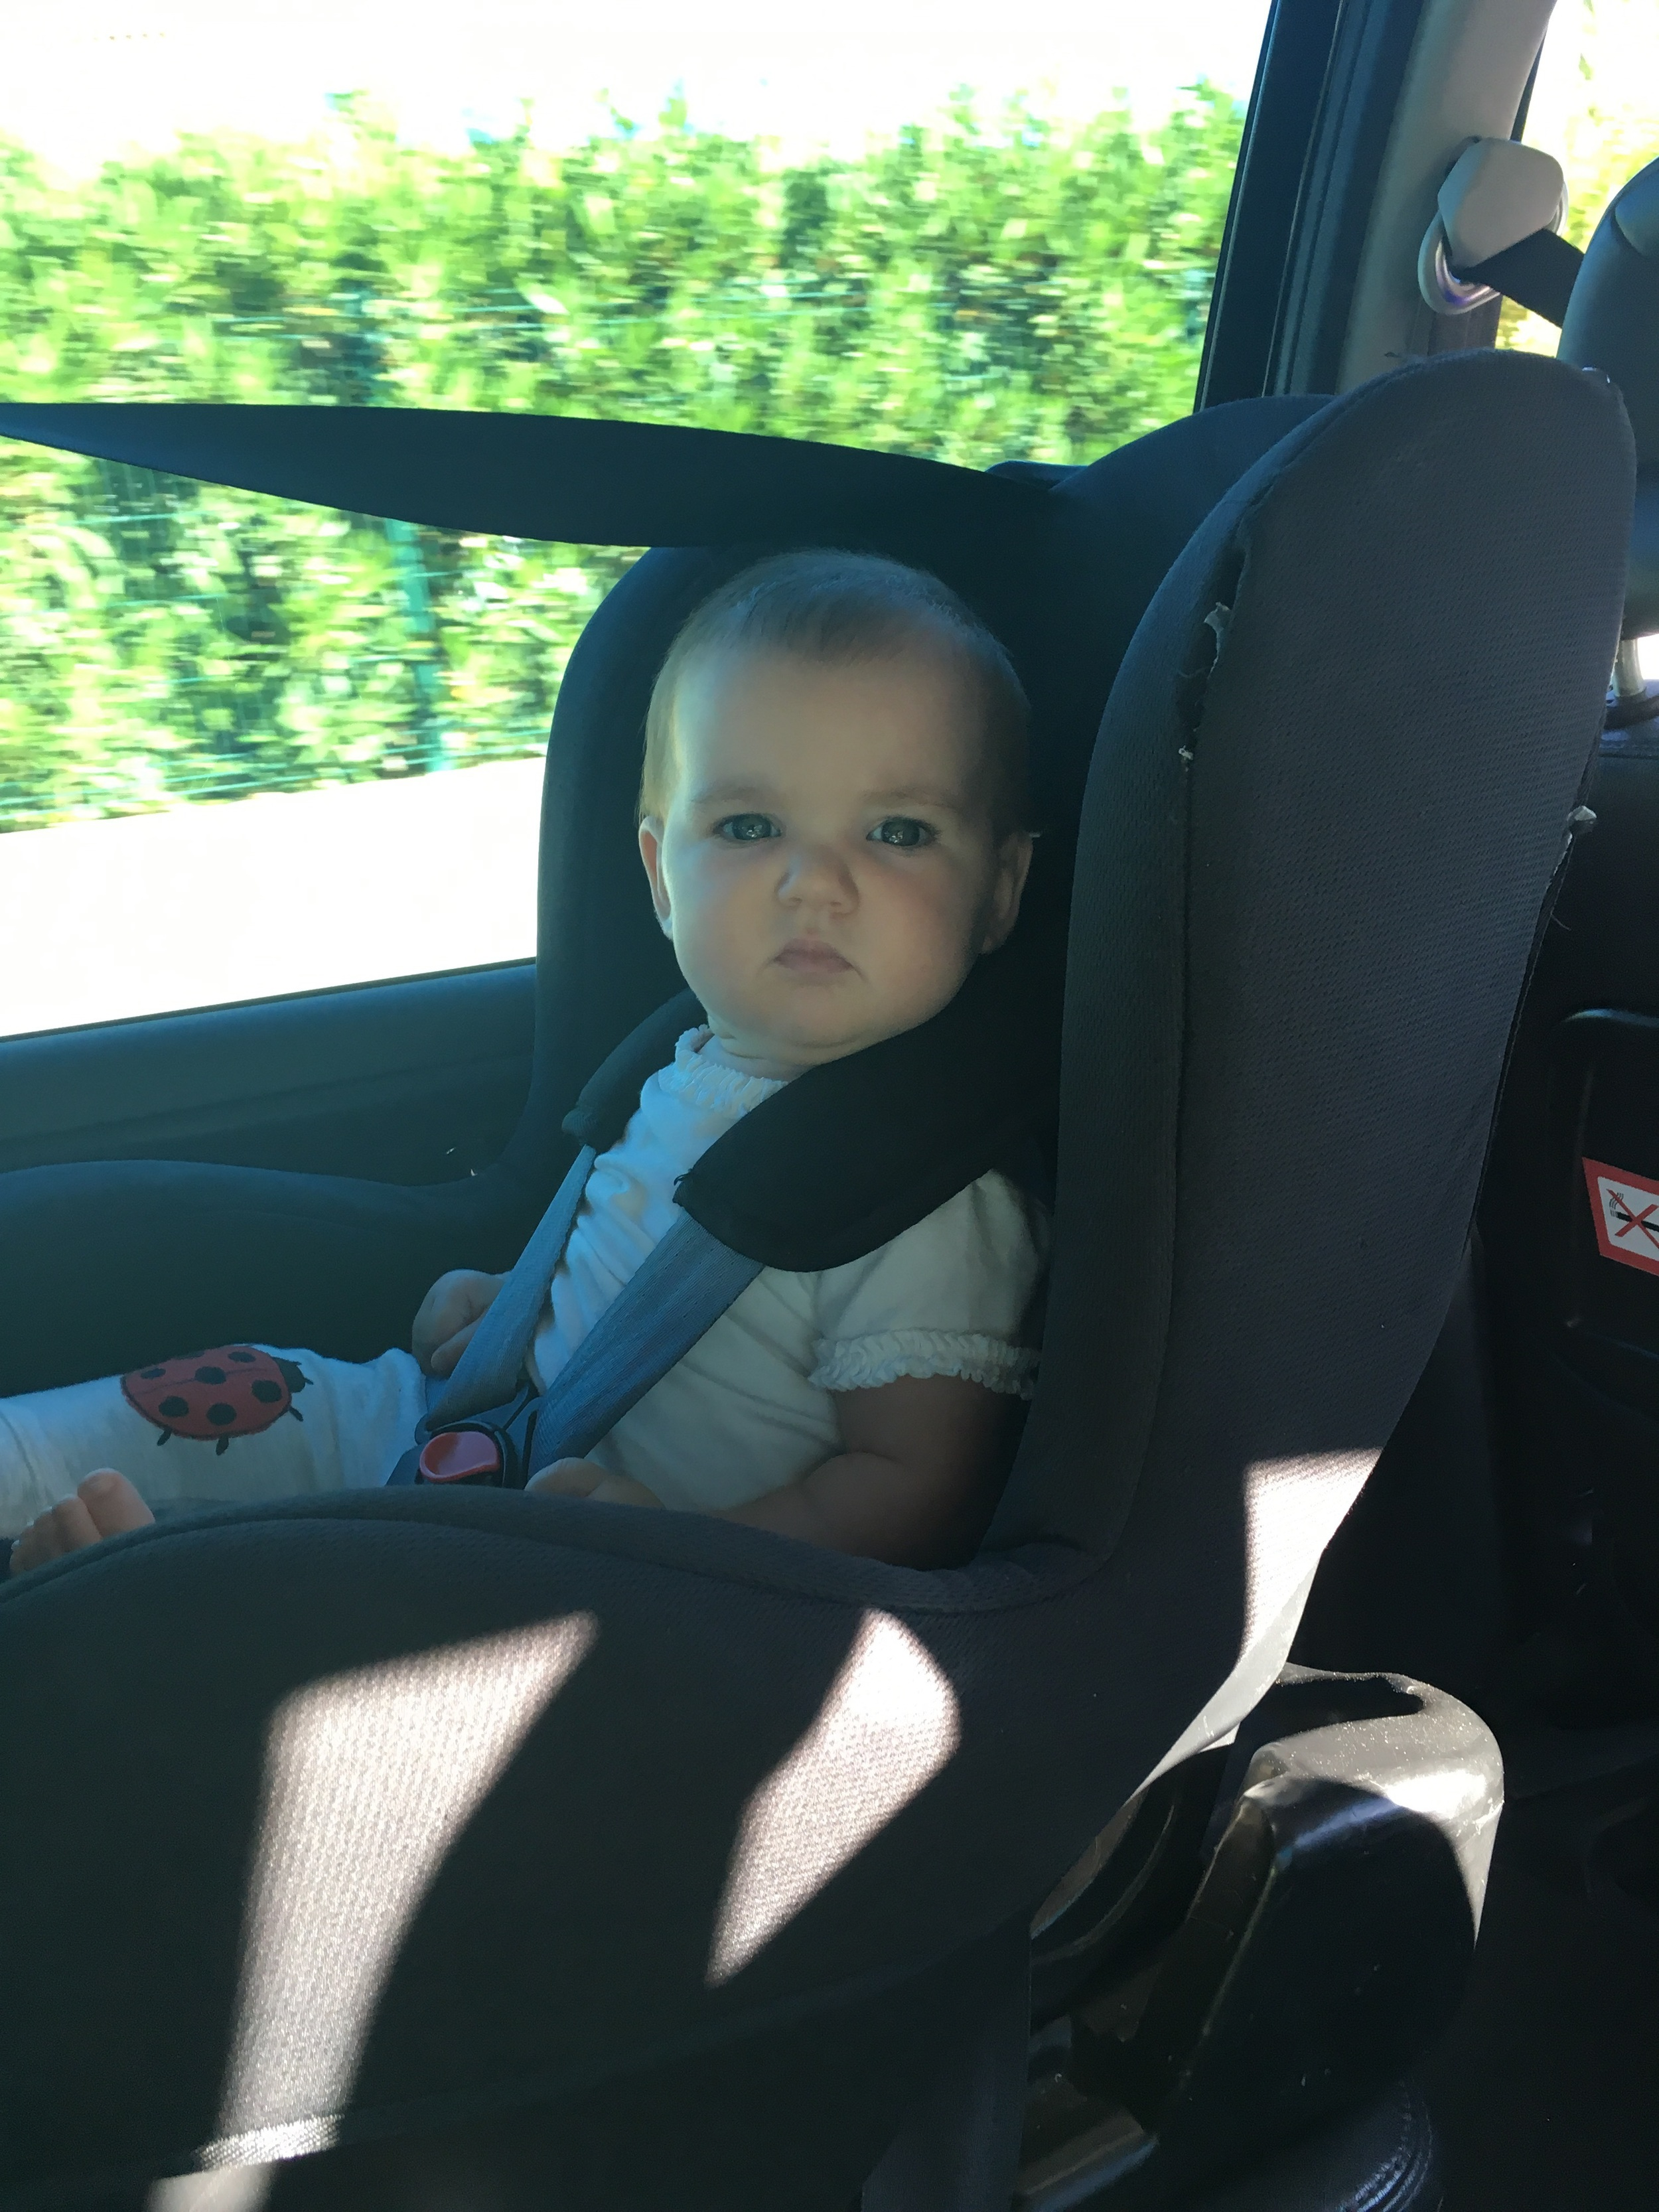 In our private taxi transfer, which came with a car seat.